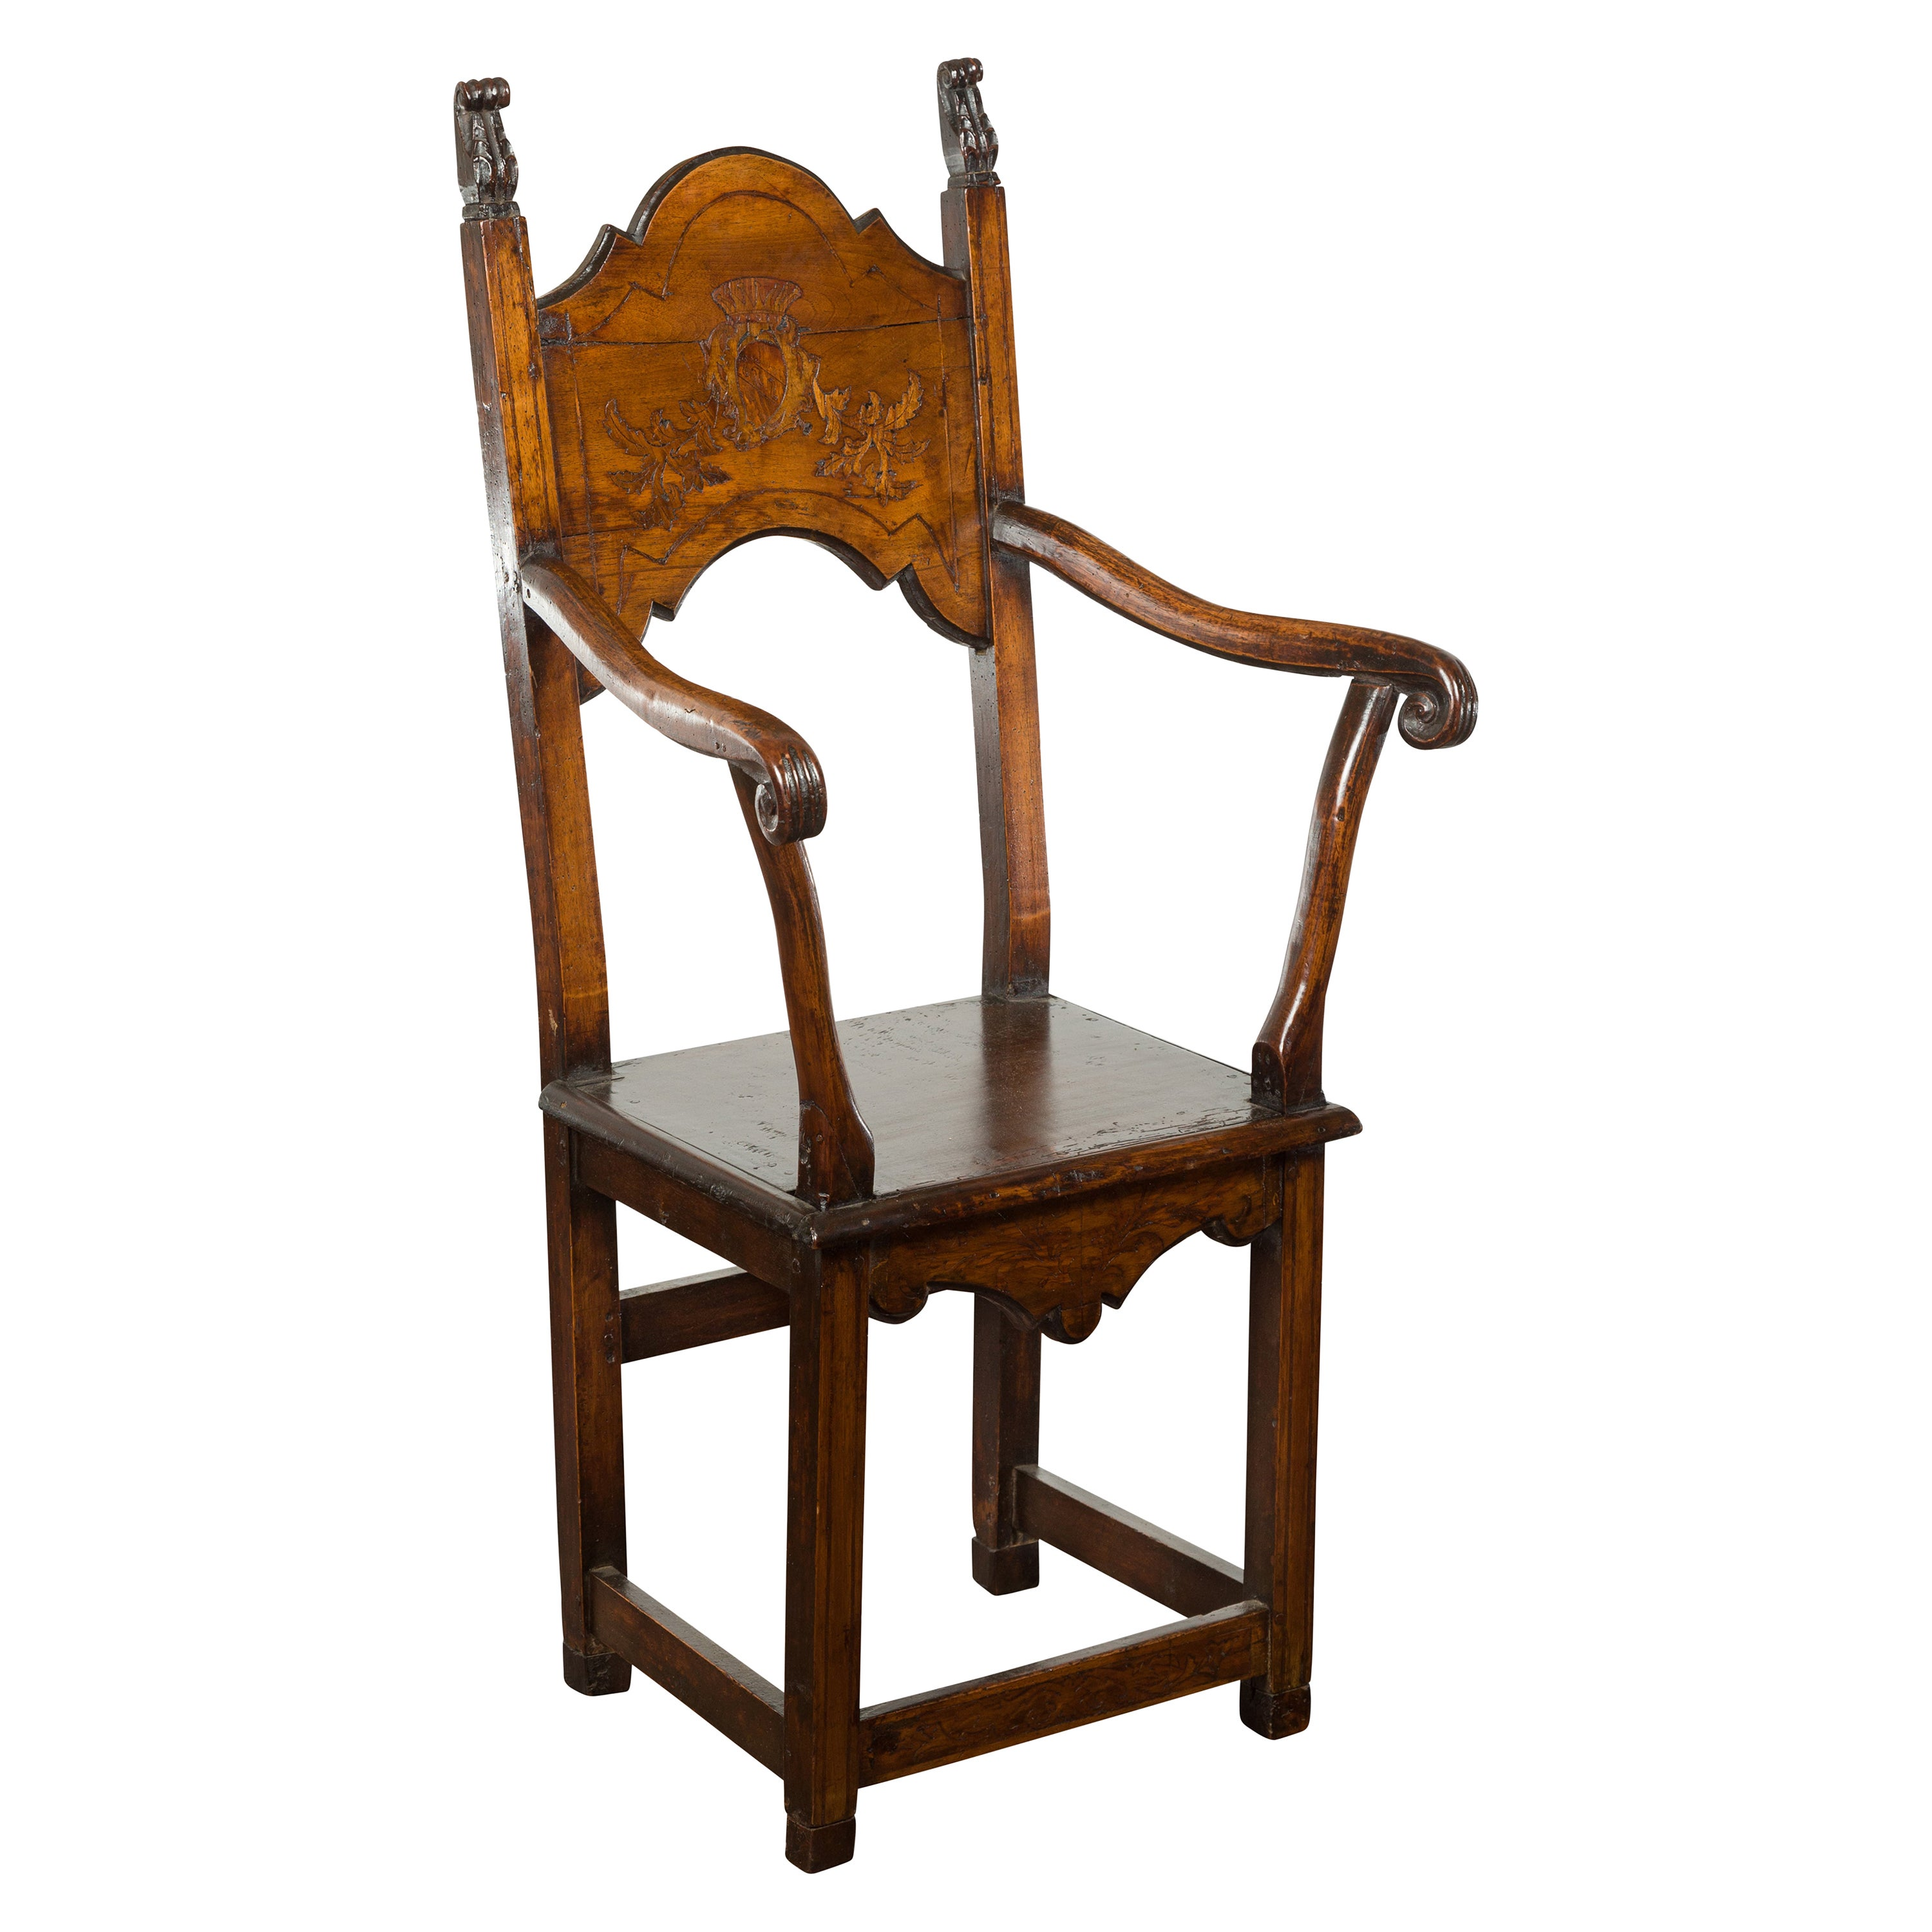 Tall English Georgian Wooden Armchair with Carved Cartouche, circa 1800-1820